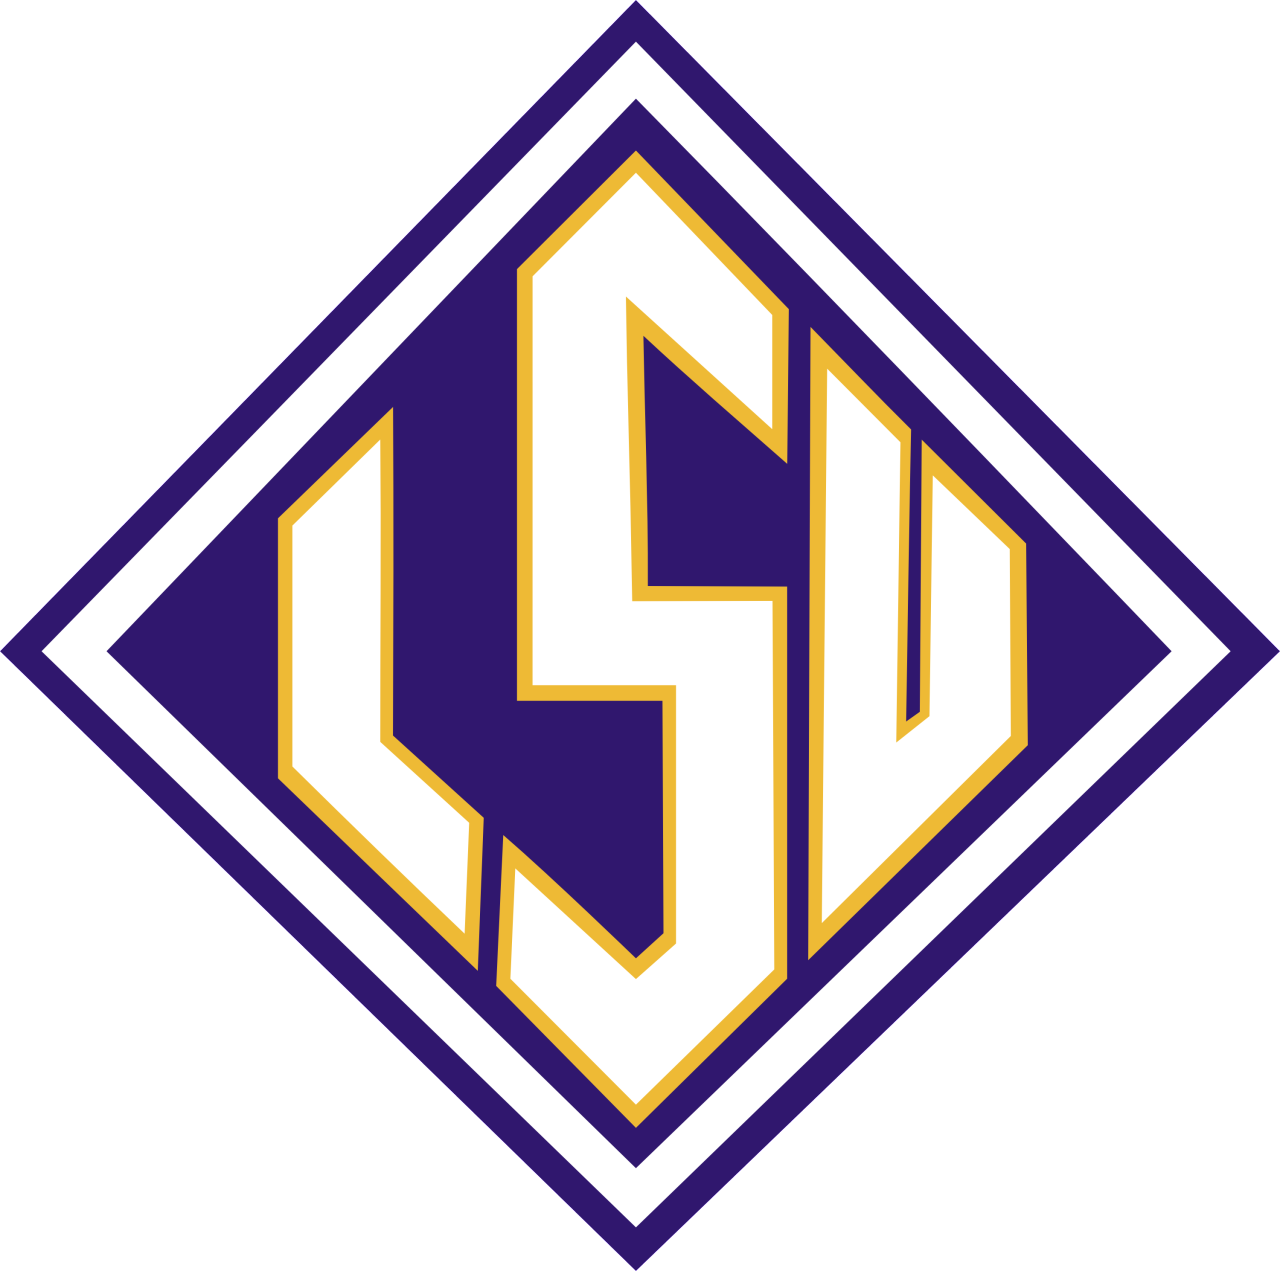 lsu logo Famous and Free Vector Logos